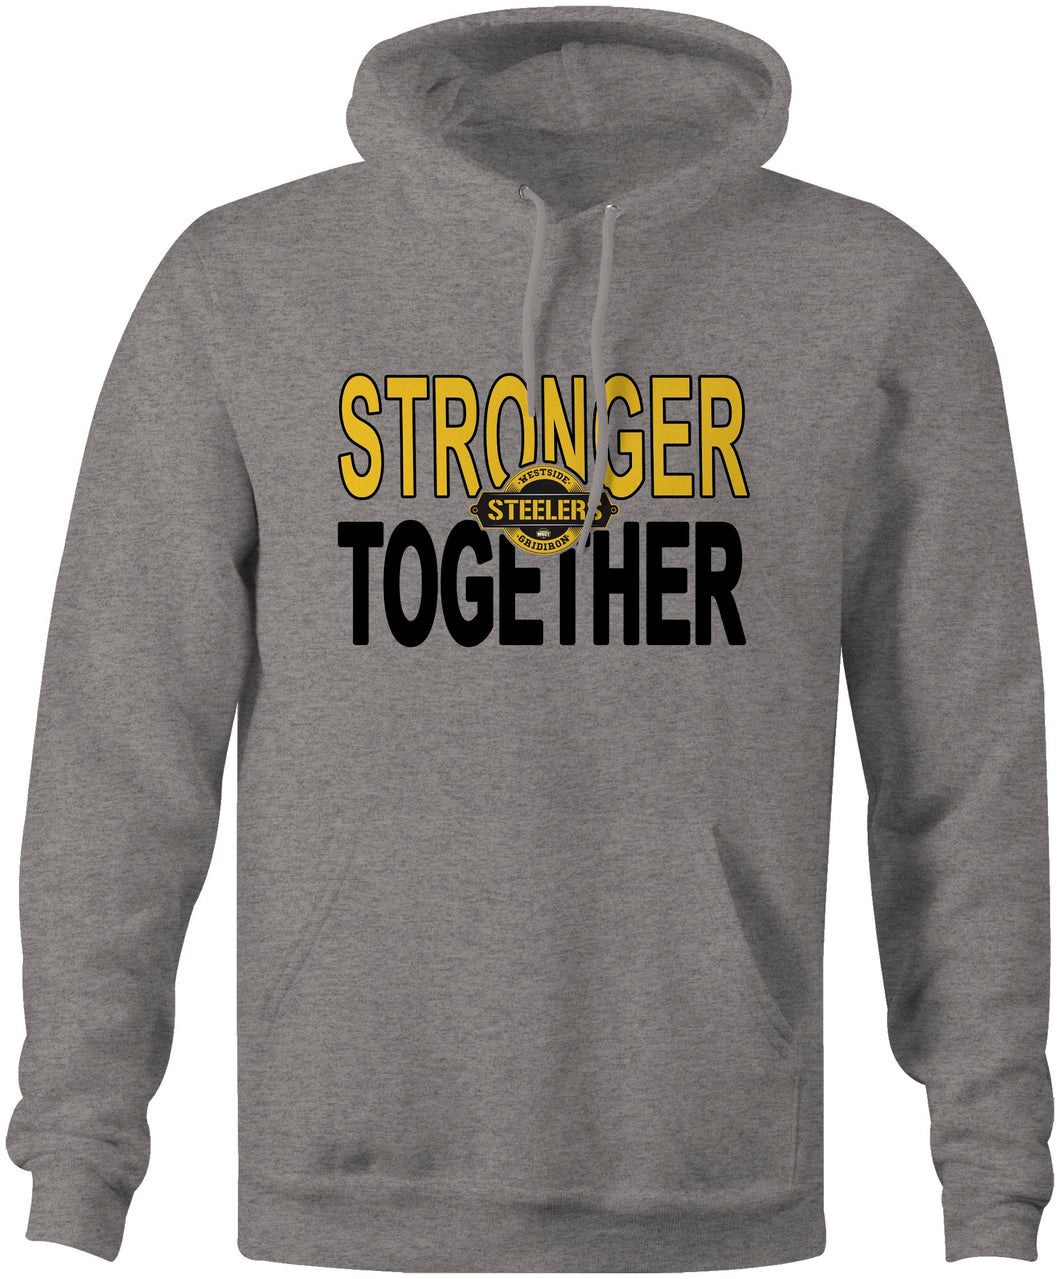 Westside Steelers Stronger Together Hoodie